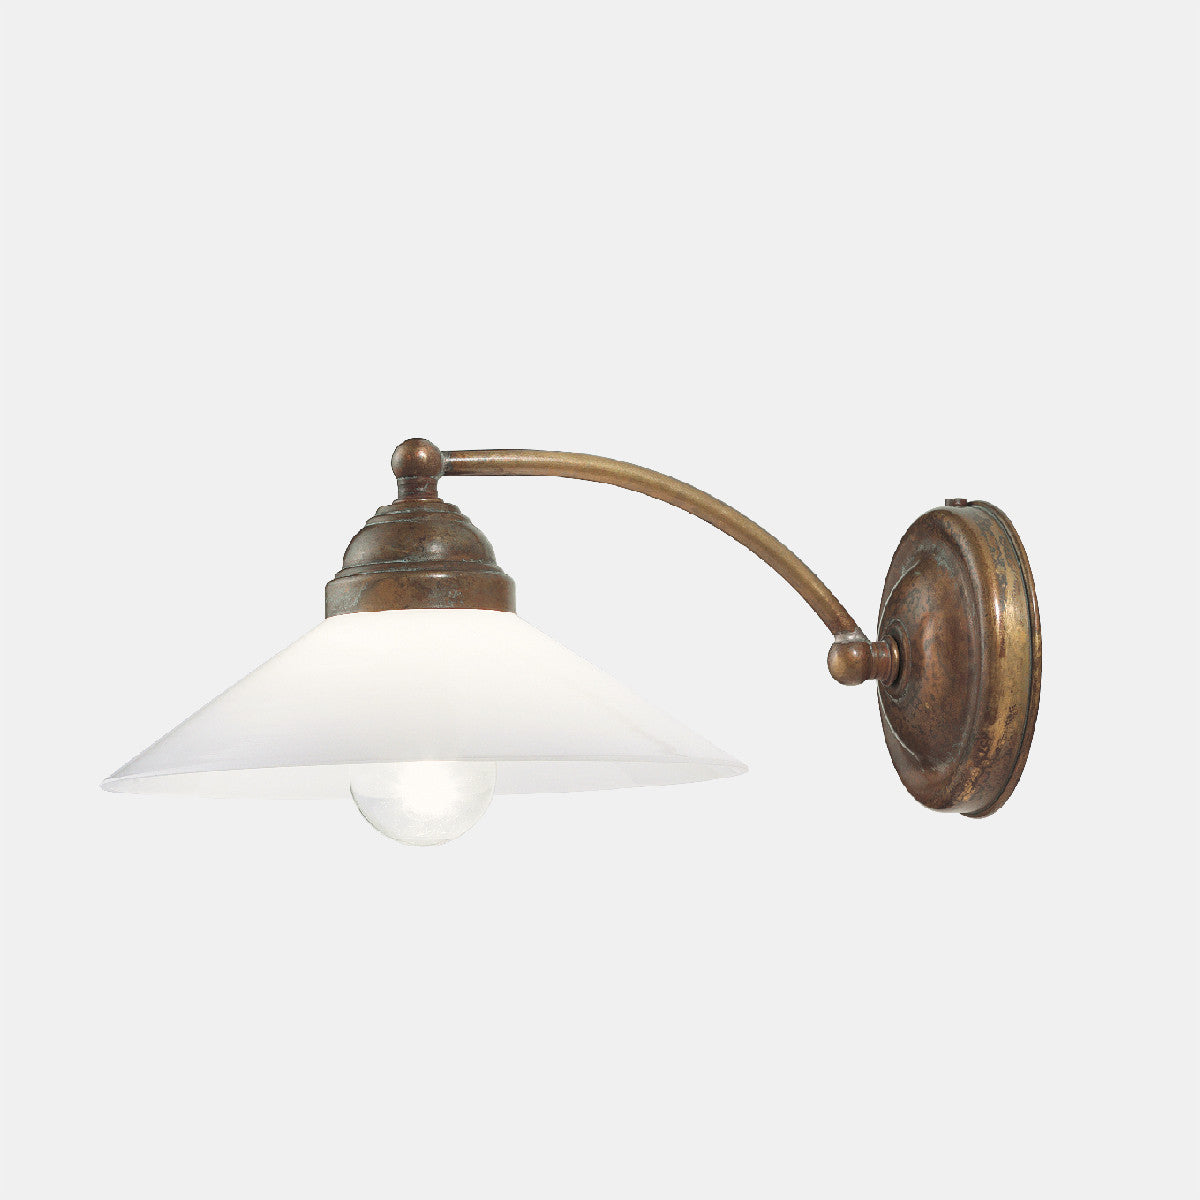 TABIA Wall Light 212.17.OV | touchGOODS